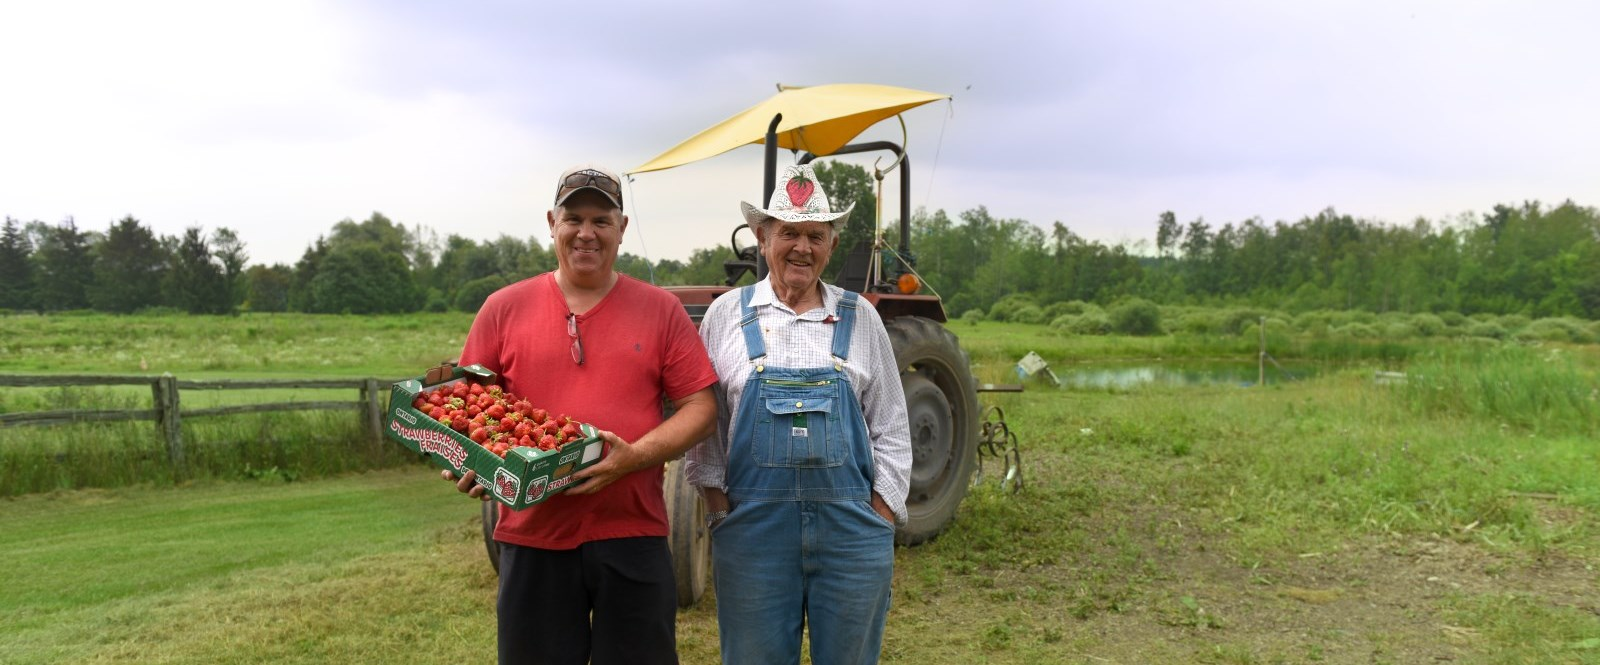 two strawberry farmers standing in a field